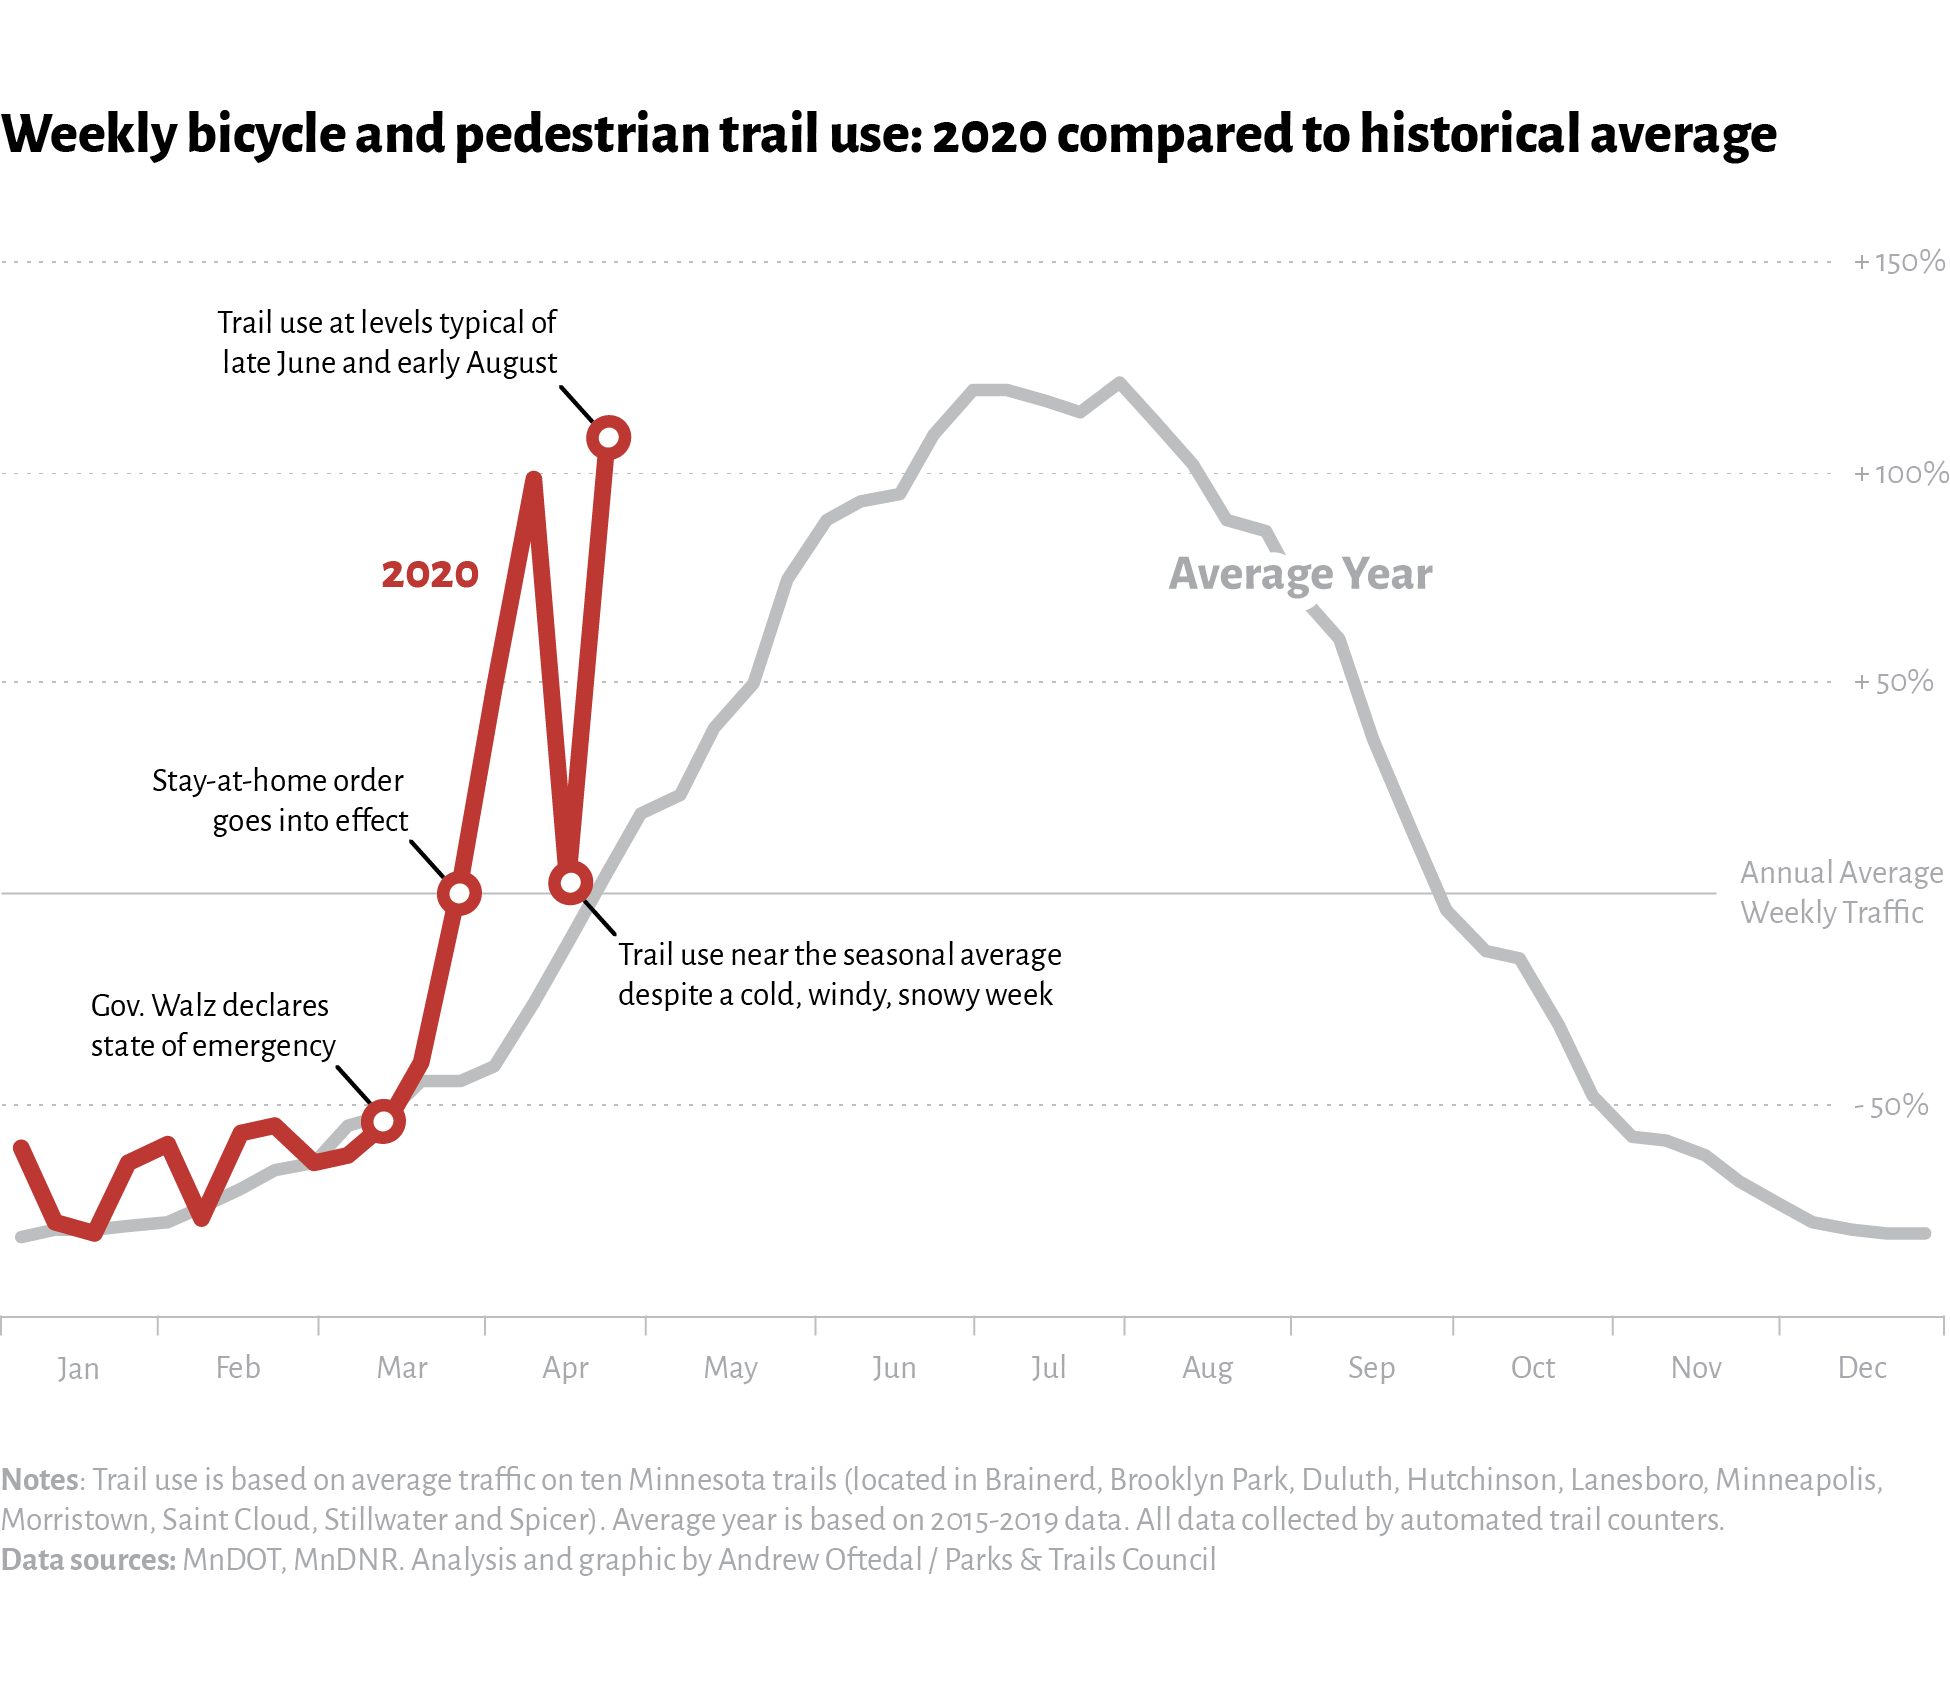 Line chart showing Weekly trail use: 2020 compared with historical avg